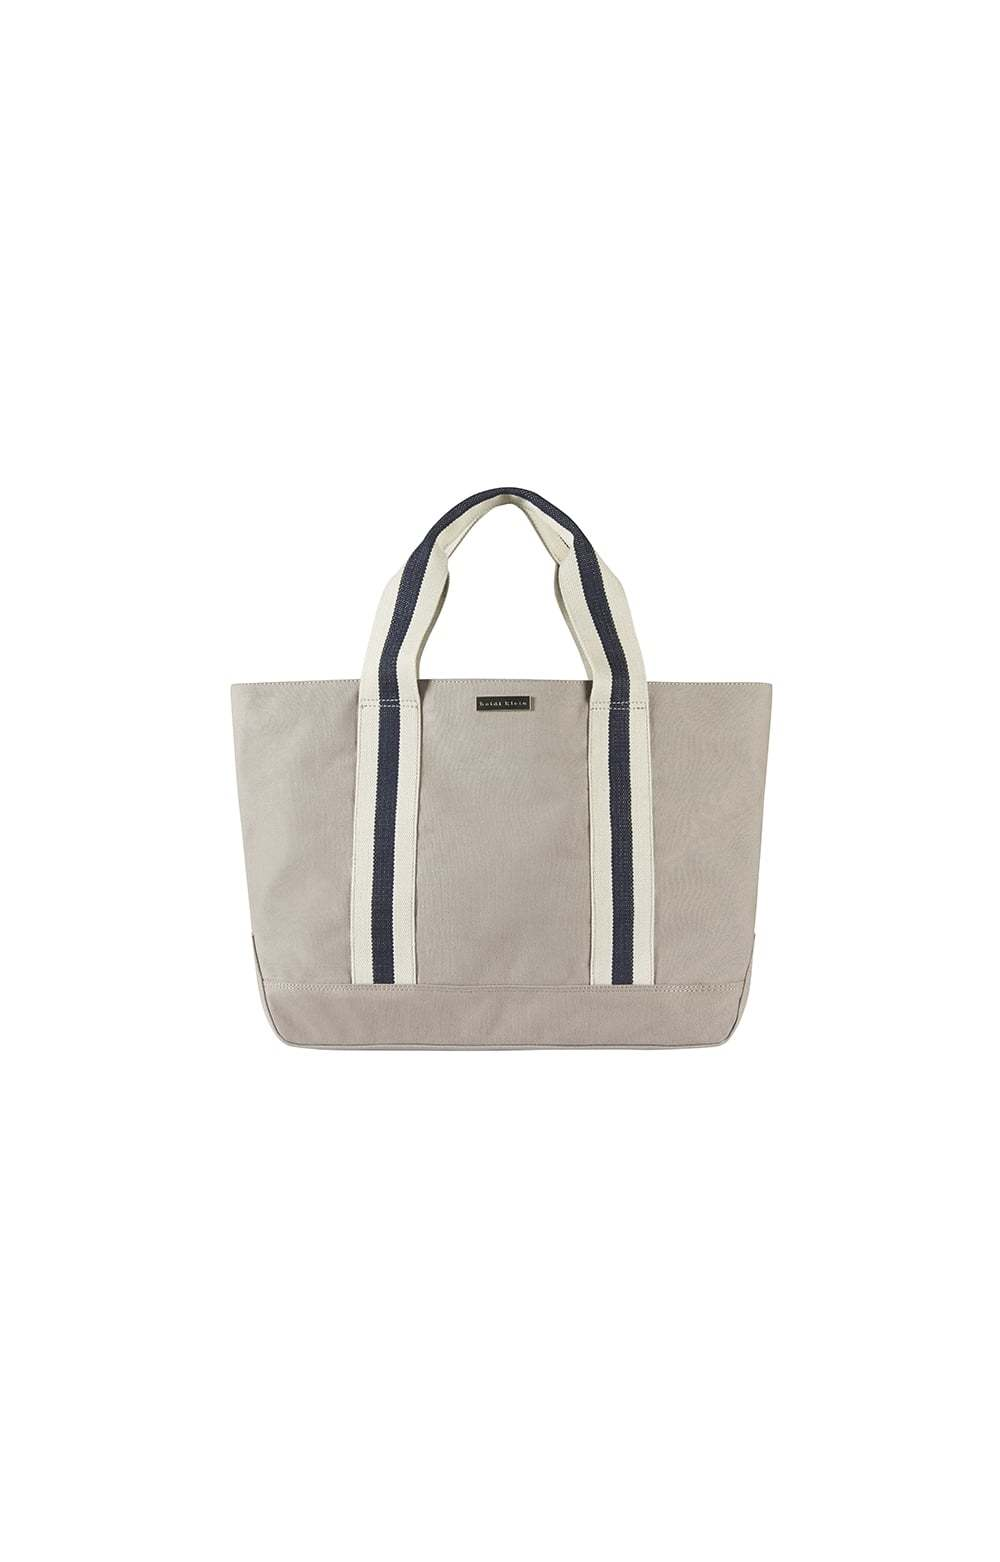 Bimini Stripe Canvas Beach Tote Navy - predominant colour: navy; secondary colour: stone; occasions: casual, holiday; type of pattern: light; style: tote; length: handle; size: oversized; material: fabric; pattern: striped; finish: plain; season: s/s 2016; wardrobe: highlight